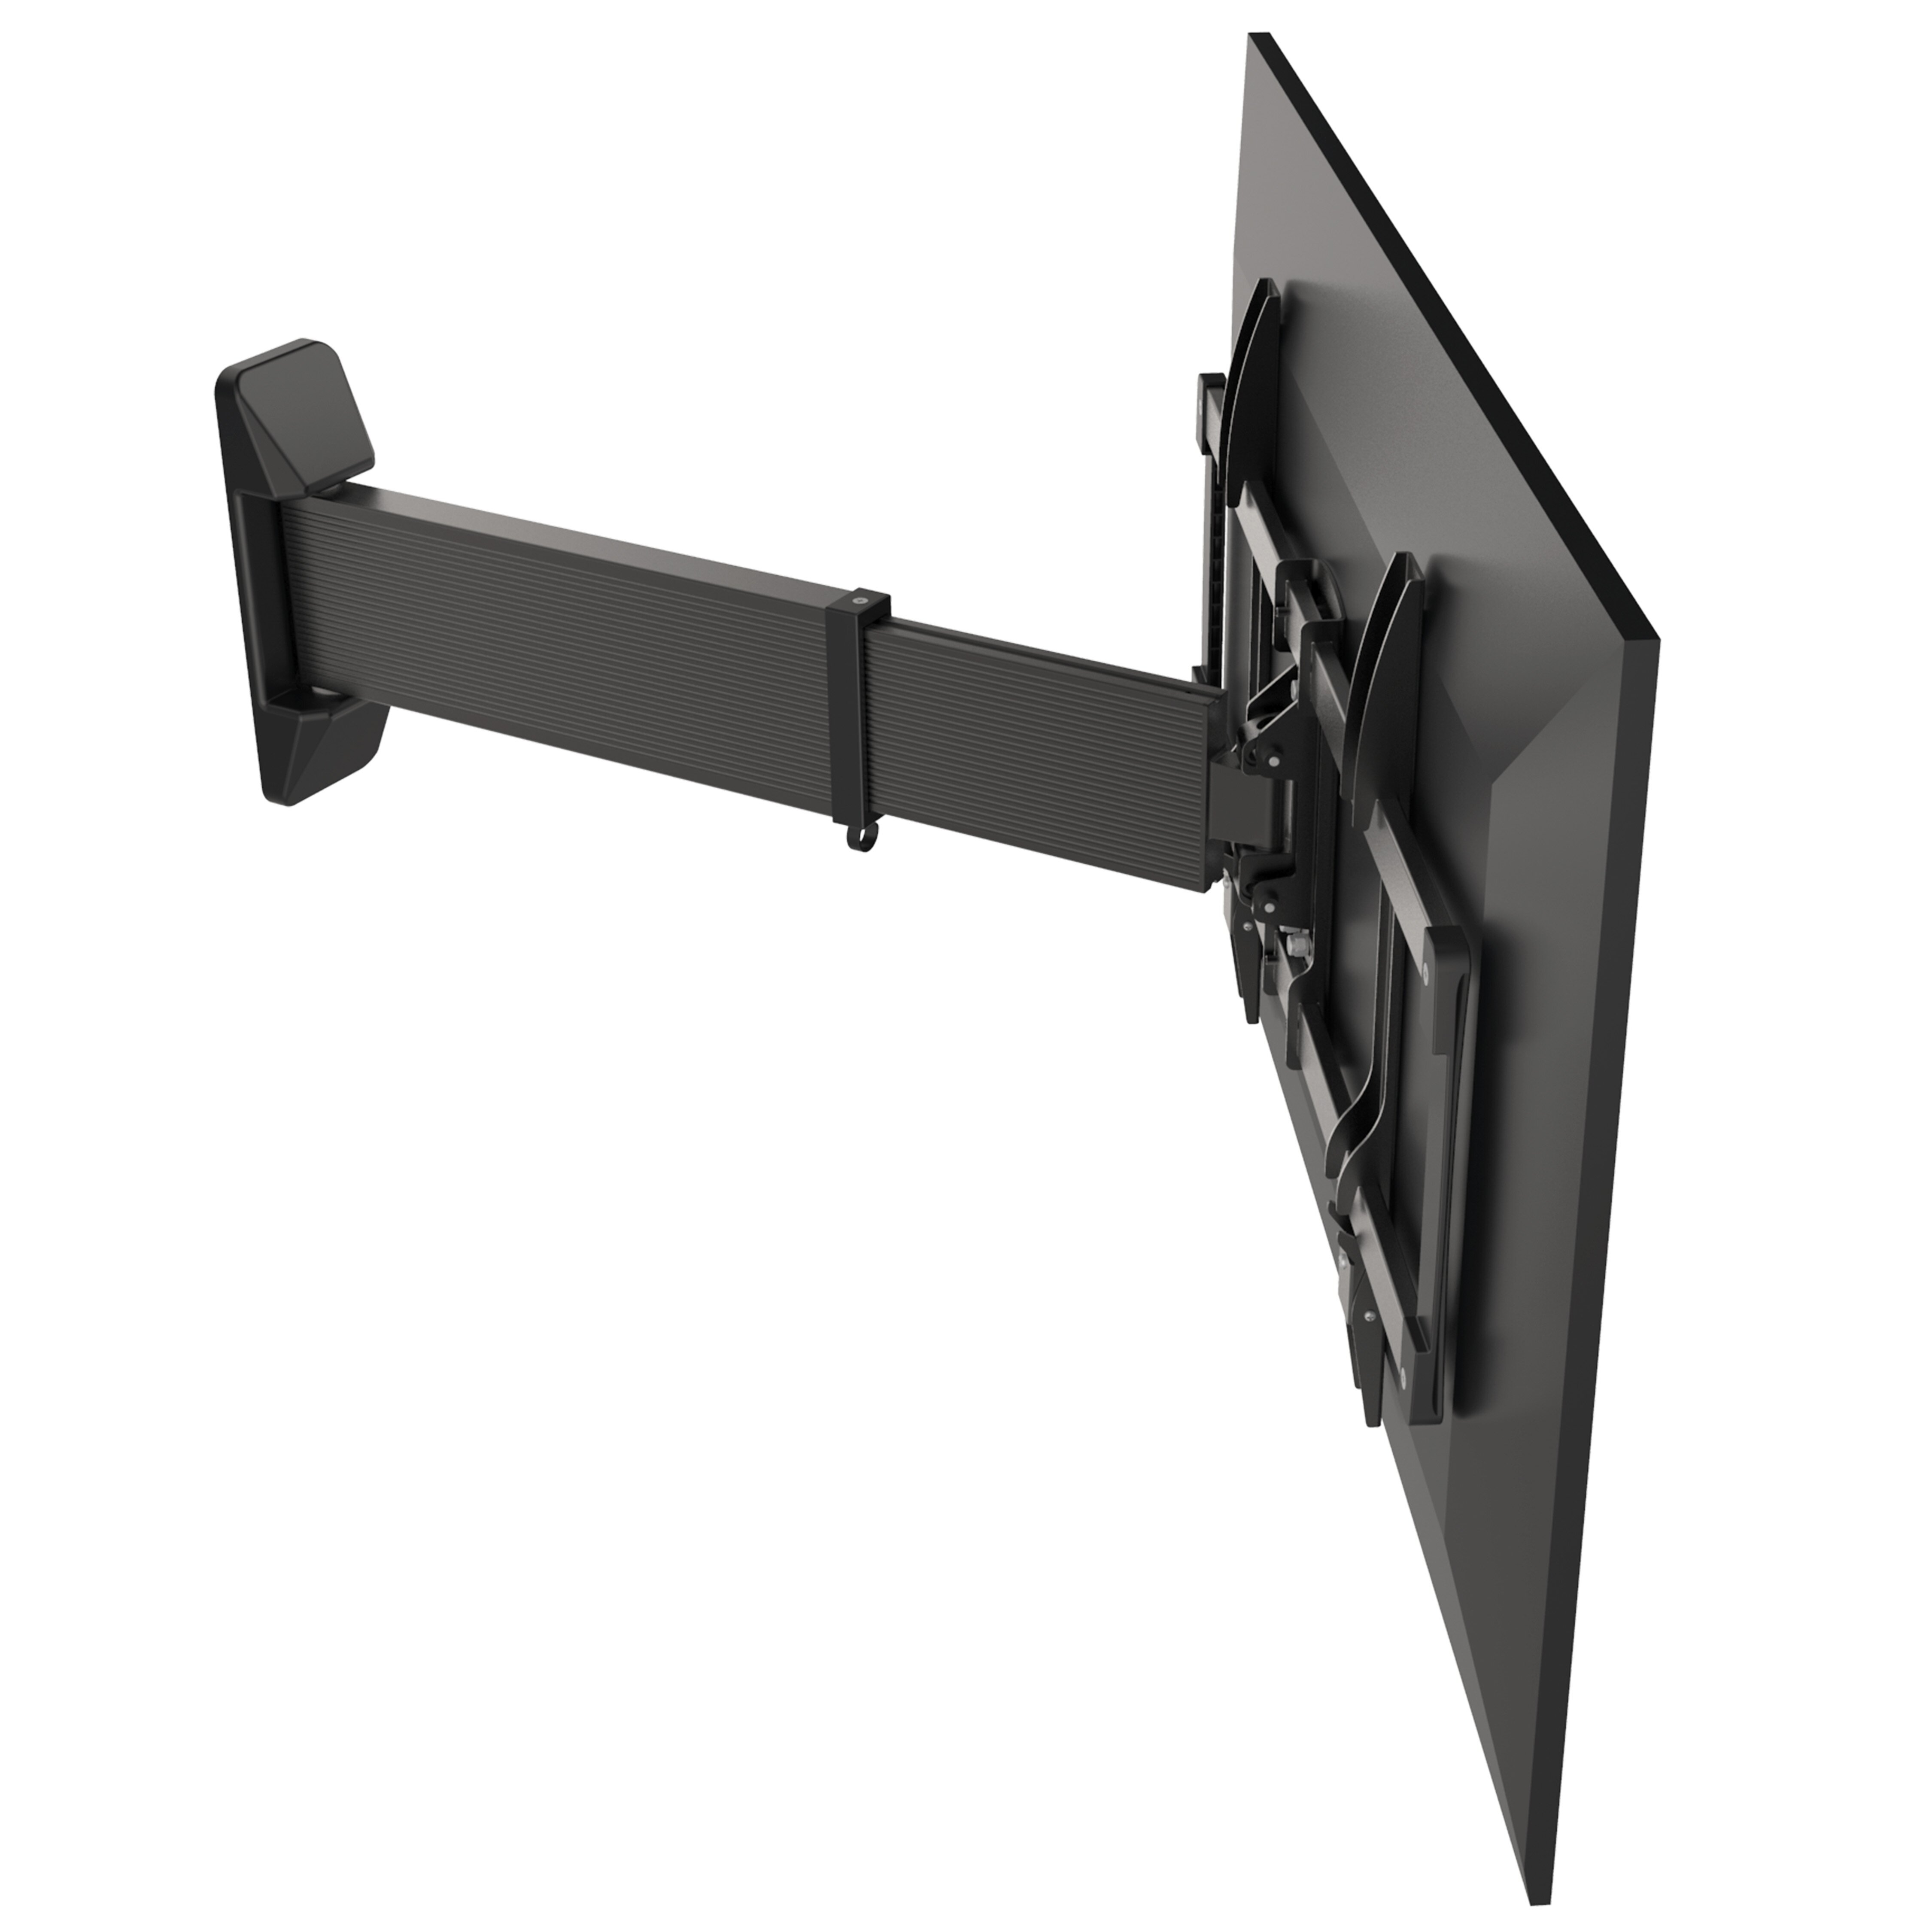 gforce full motion unviersal wall mount for 37 70 flat panel screens reviews. Black Bedroom Furniture Sets. Home Design Ideas